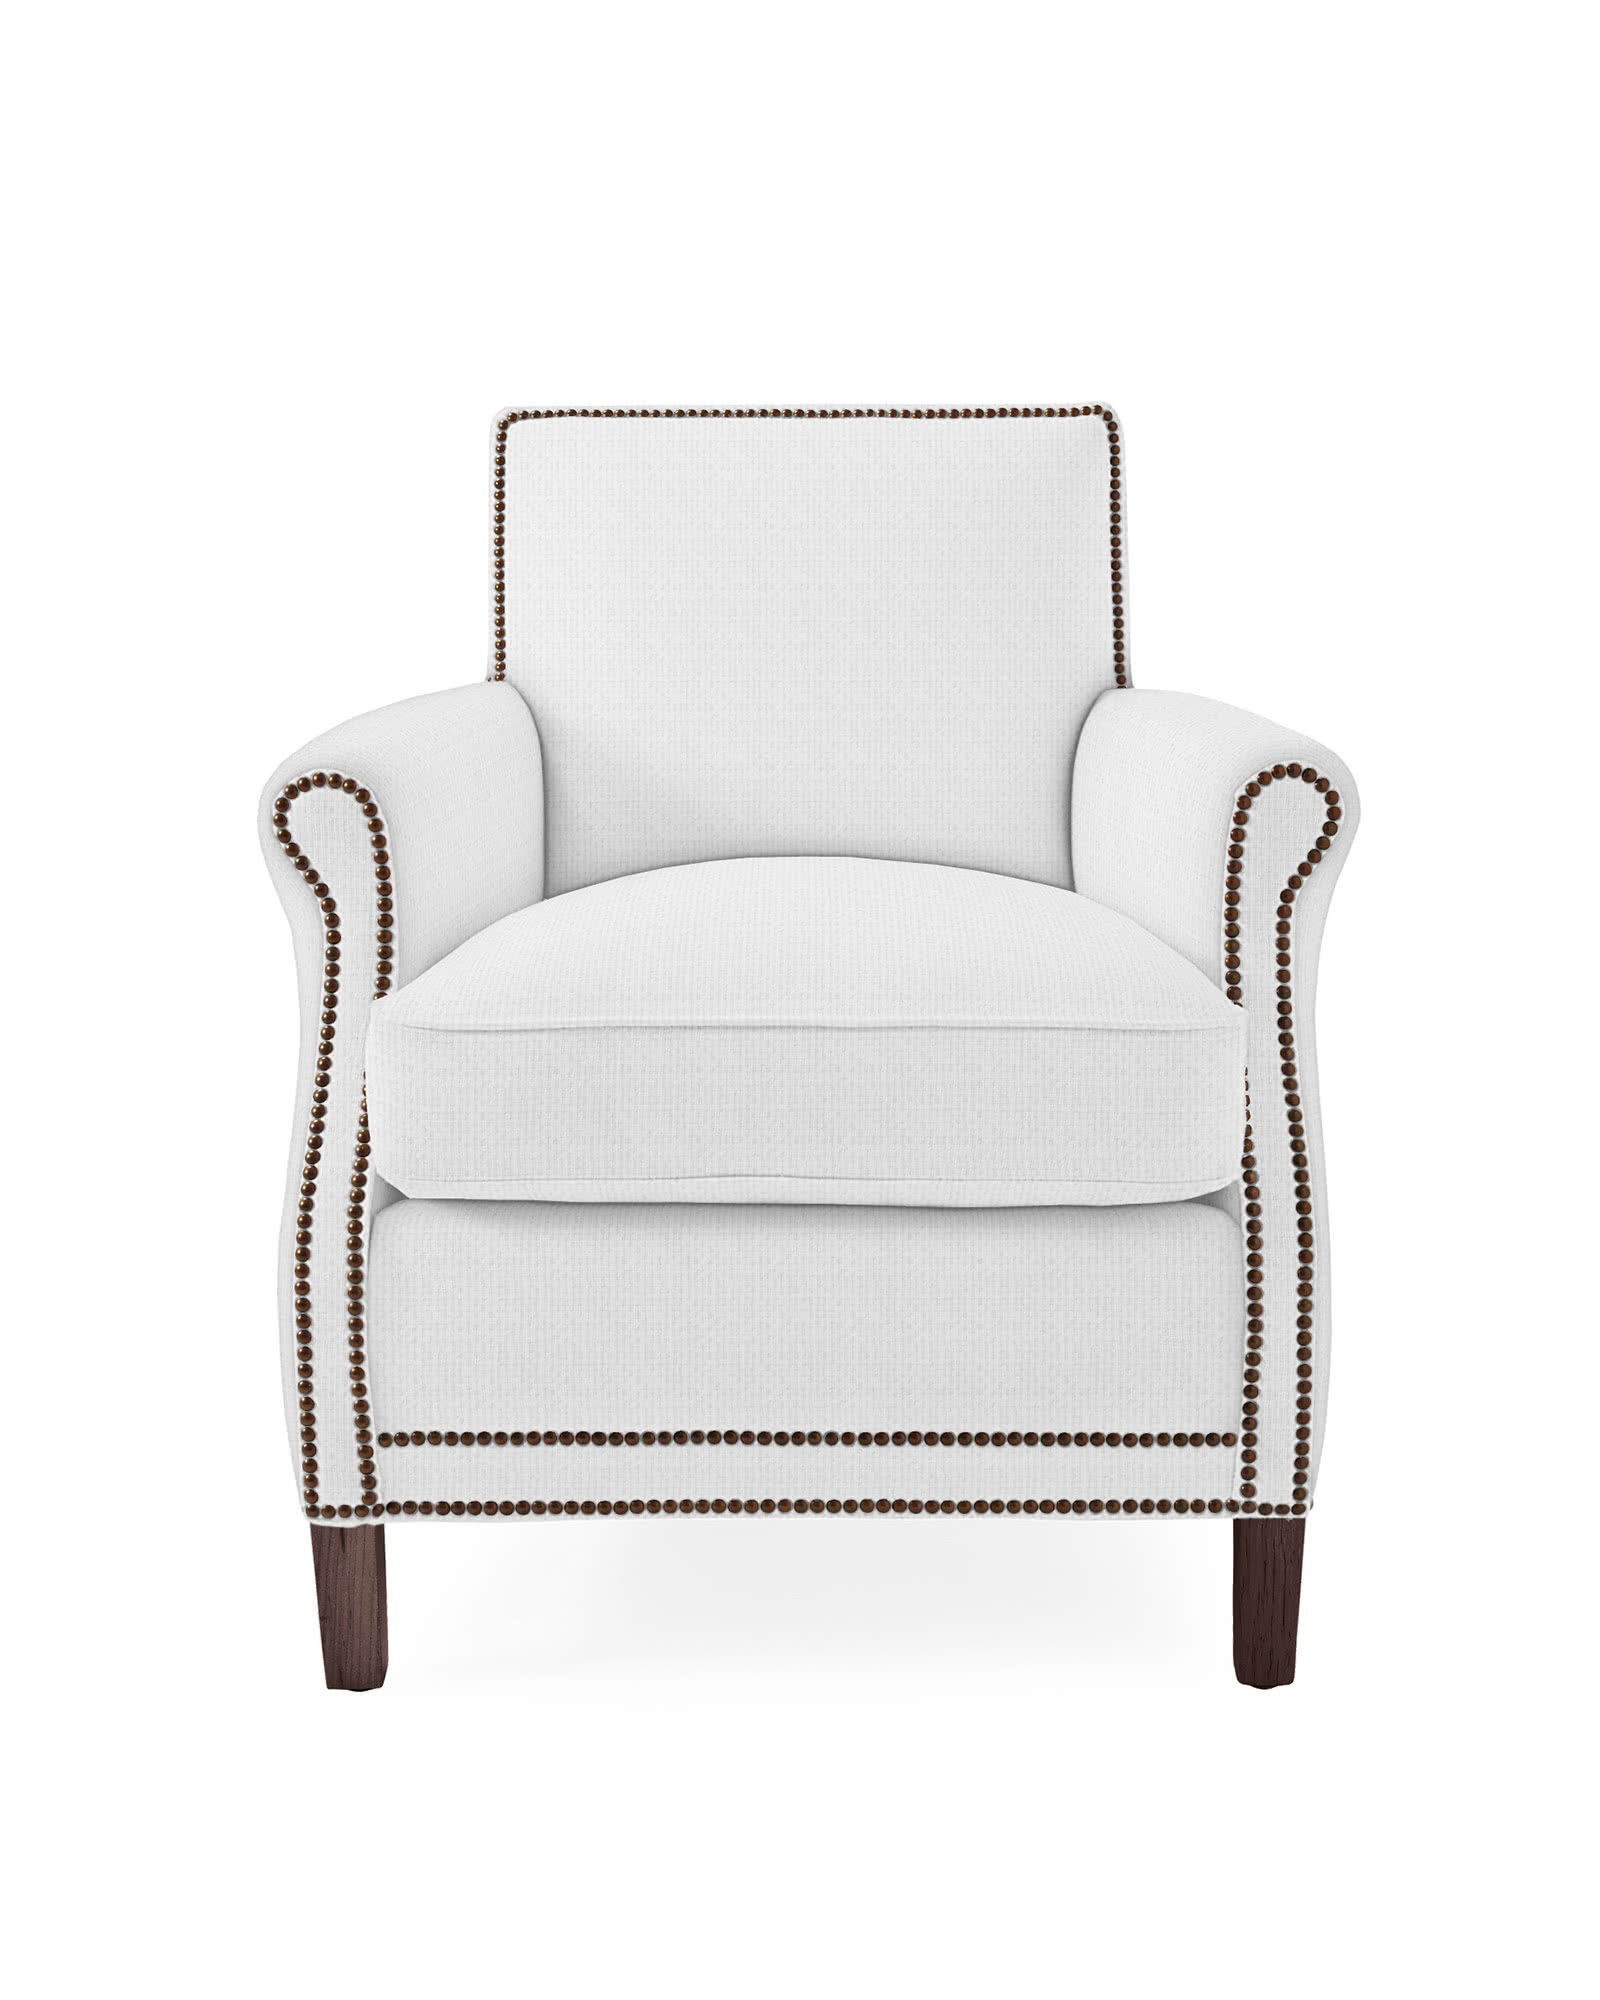 Canyon Chair with Nailheads,